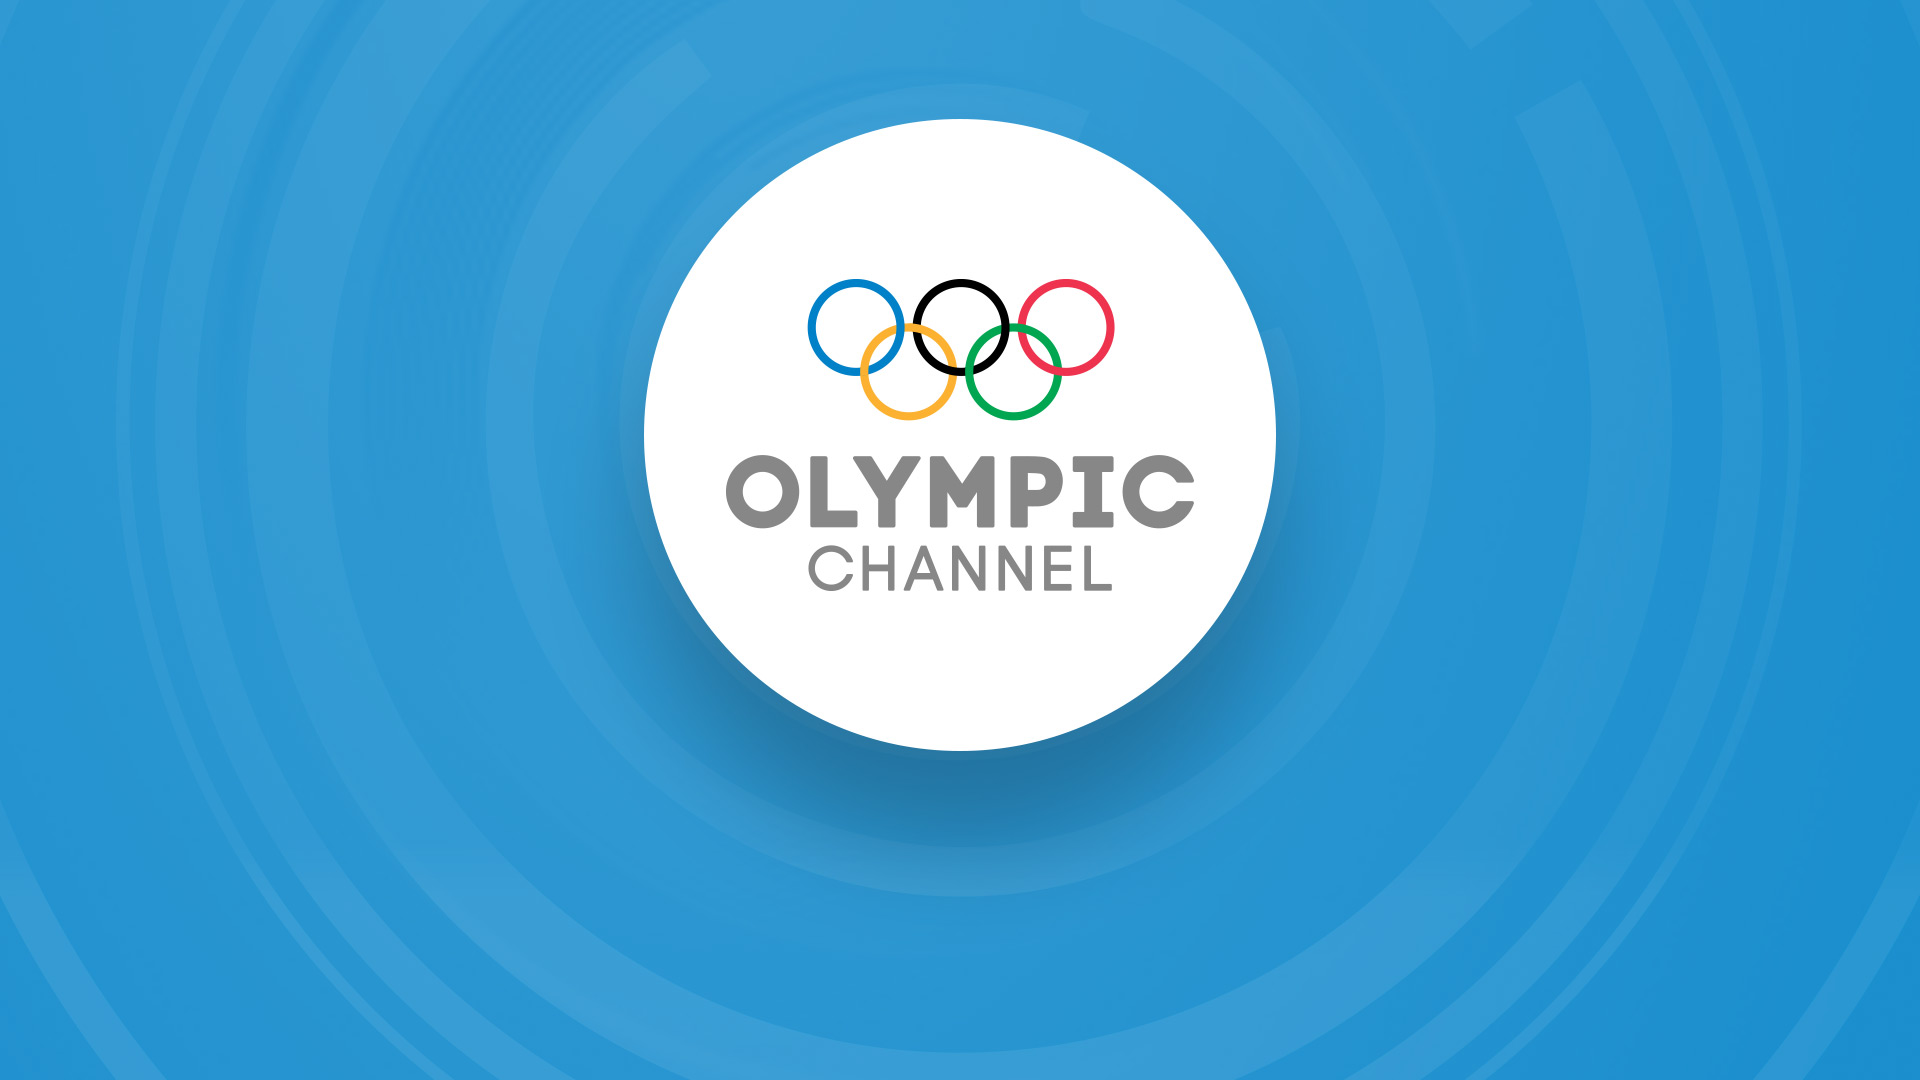 How To Watch The Olympic Channel Live Without Cable 2021